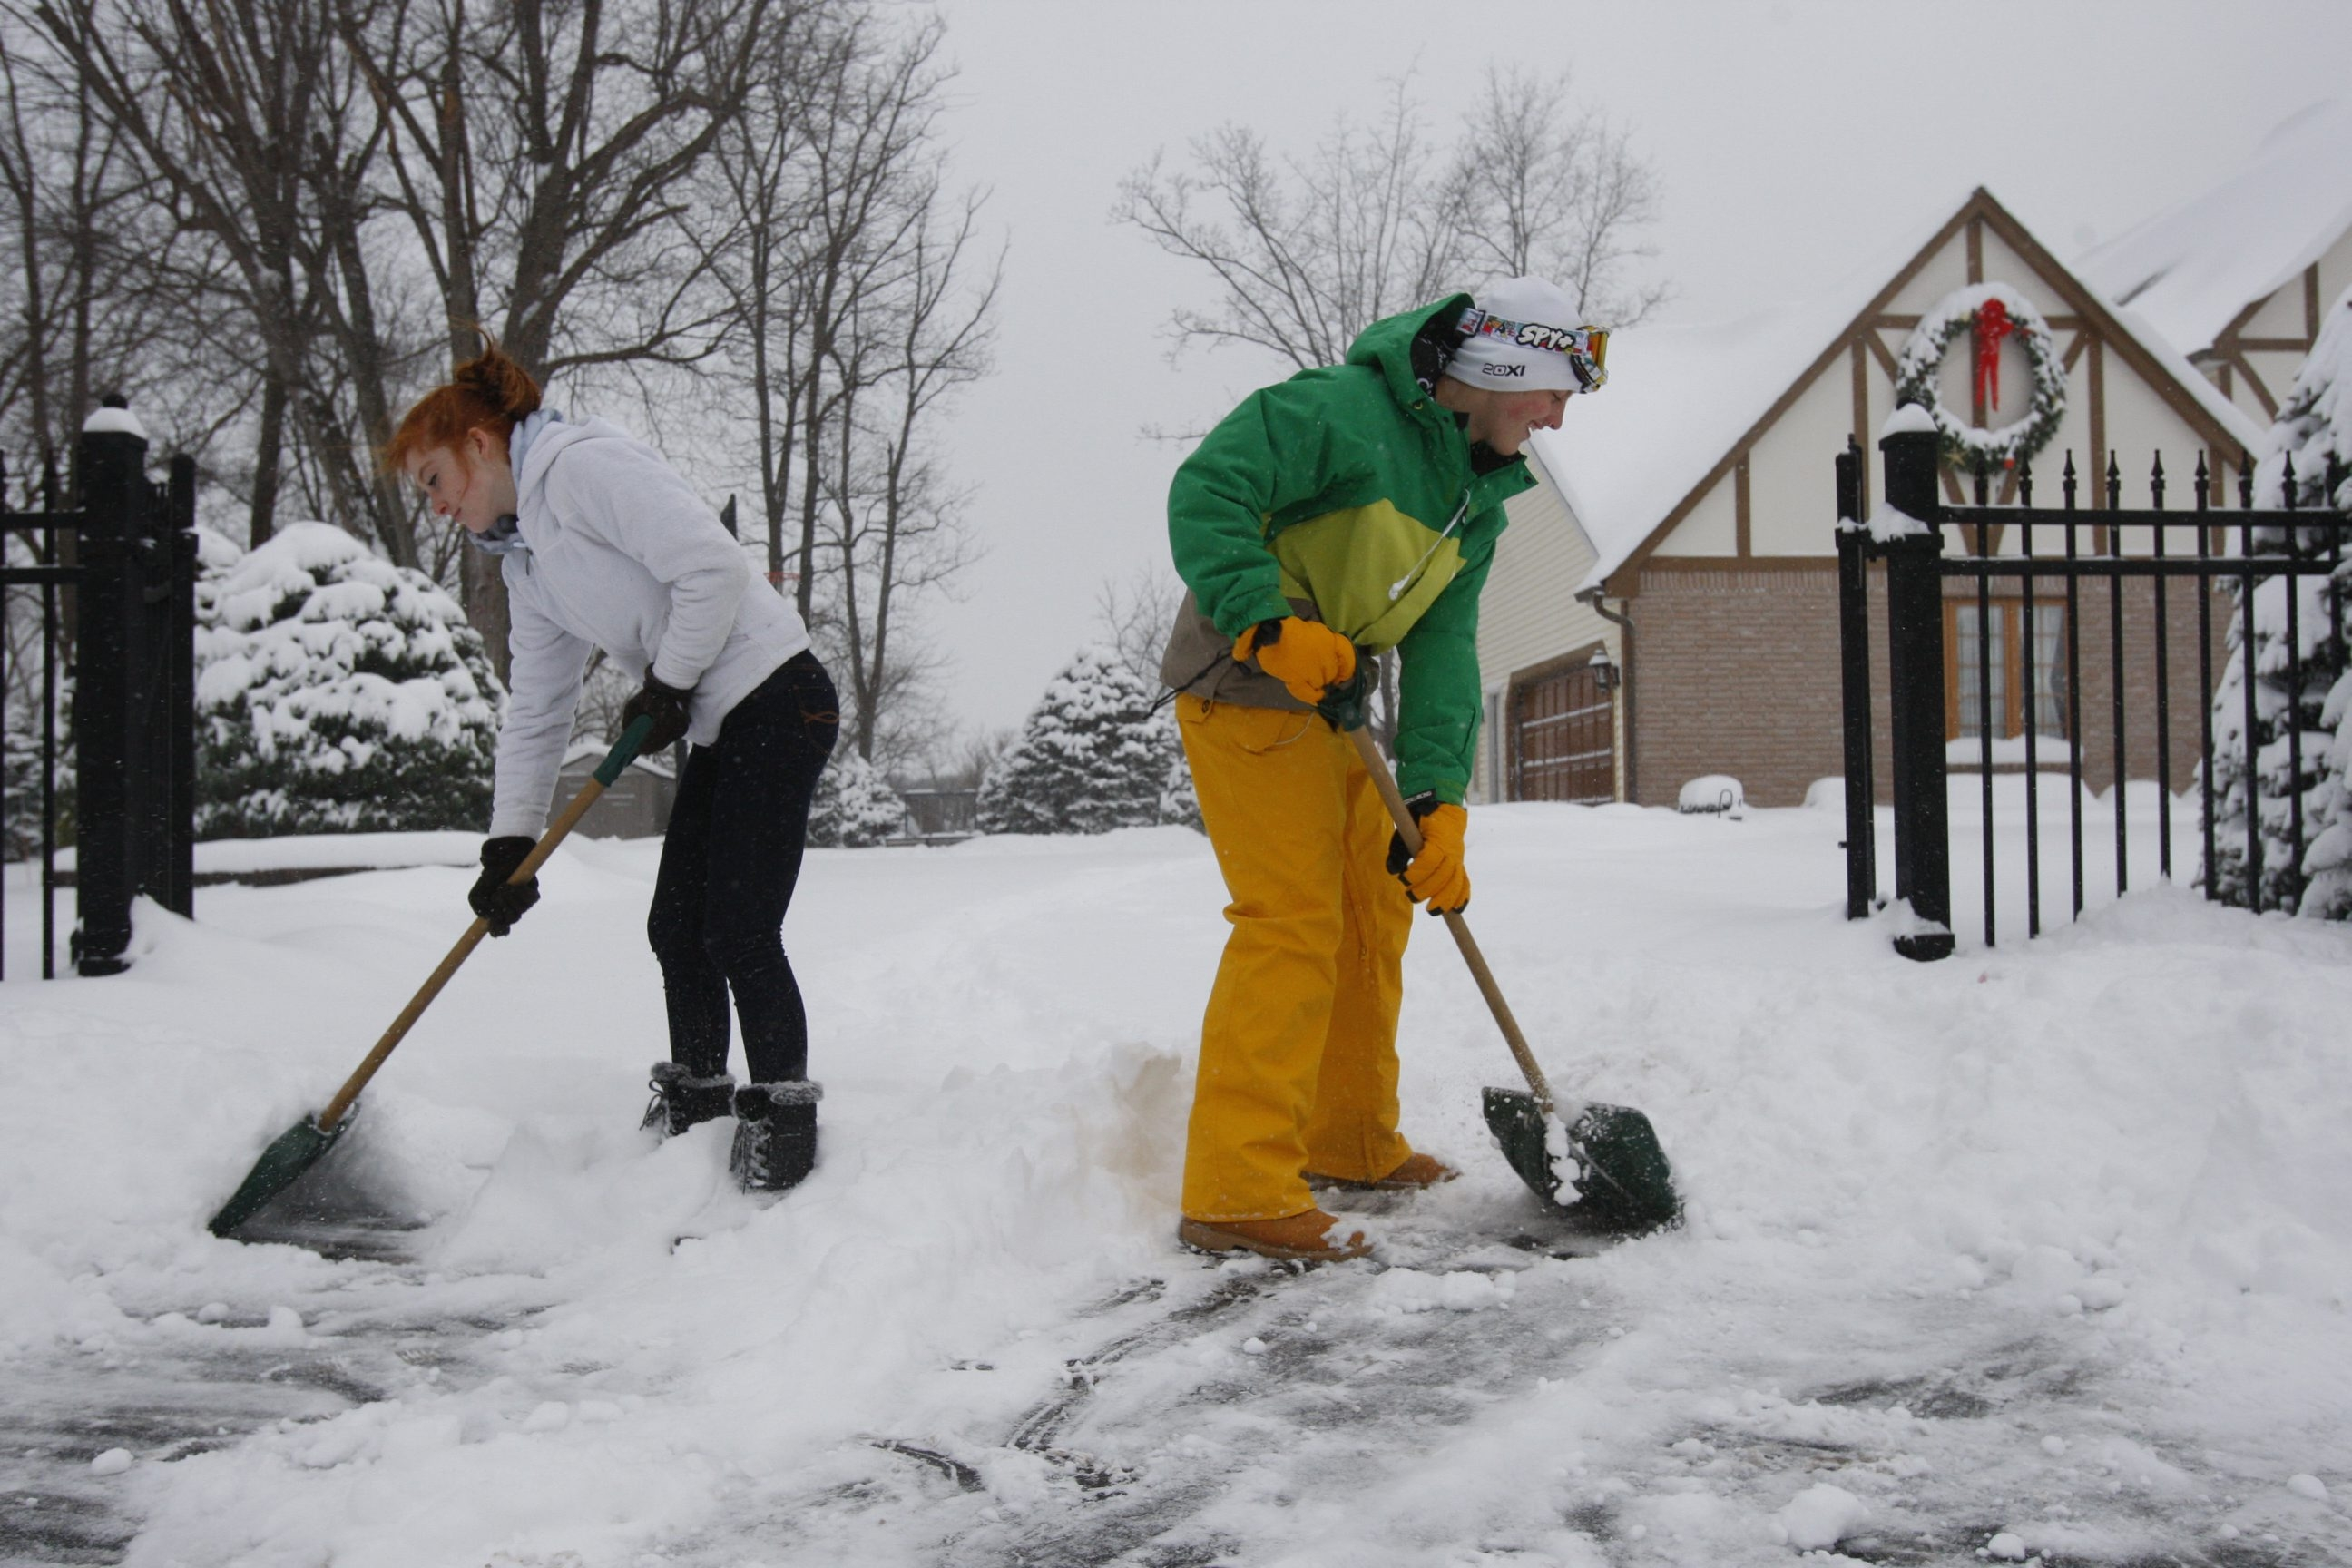 Twins Danielle and Chris Janek, 15, shovel out their parents' driveway along Route 391 in Hamburg, prior to their parents coming home, as more than two feet of snow fell Wednesday.